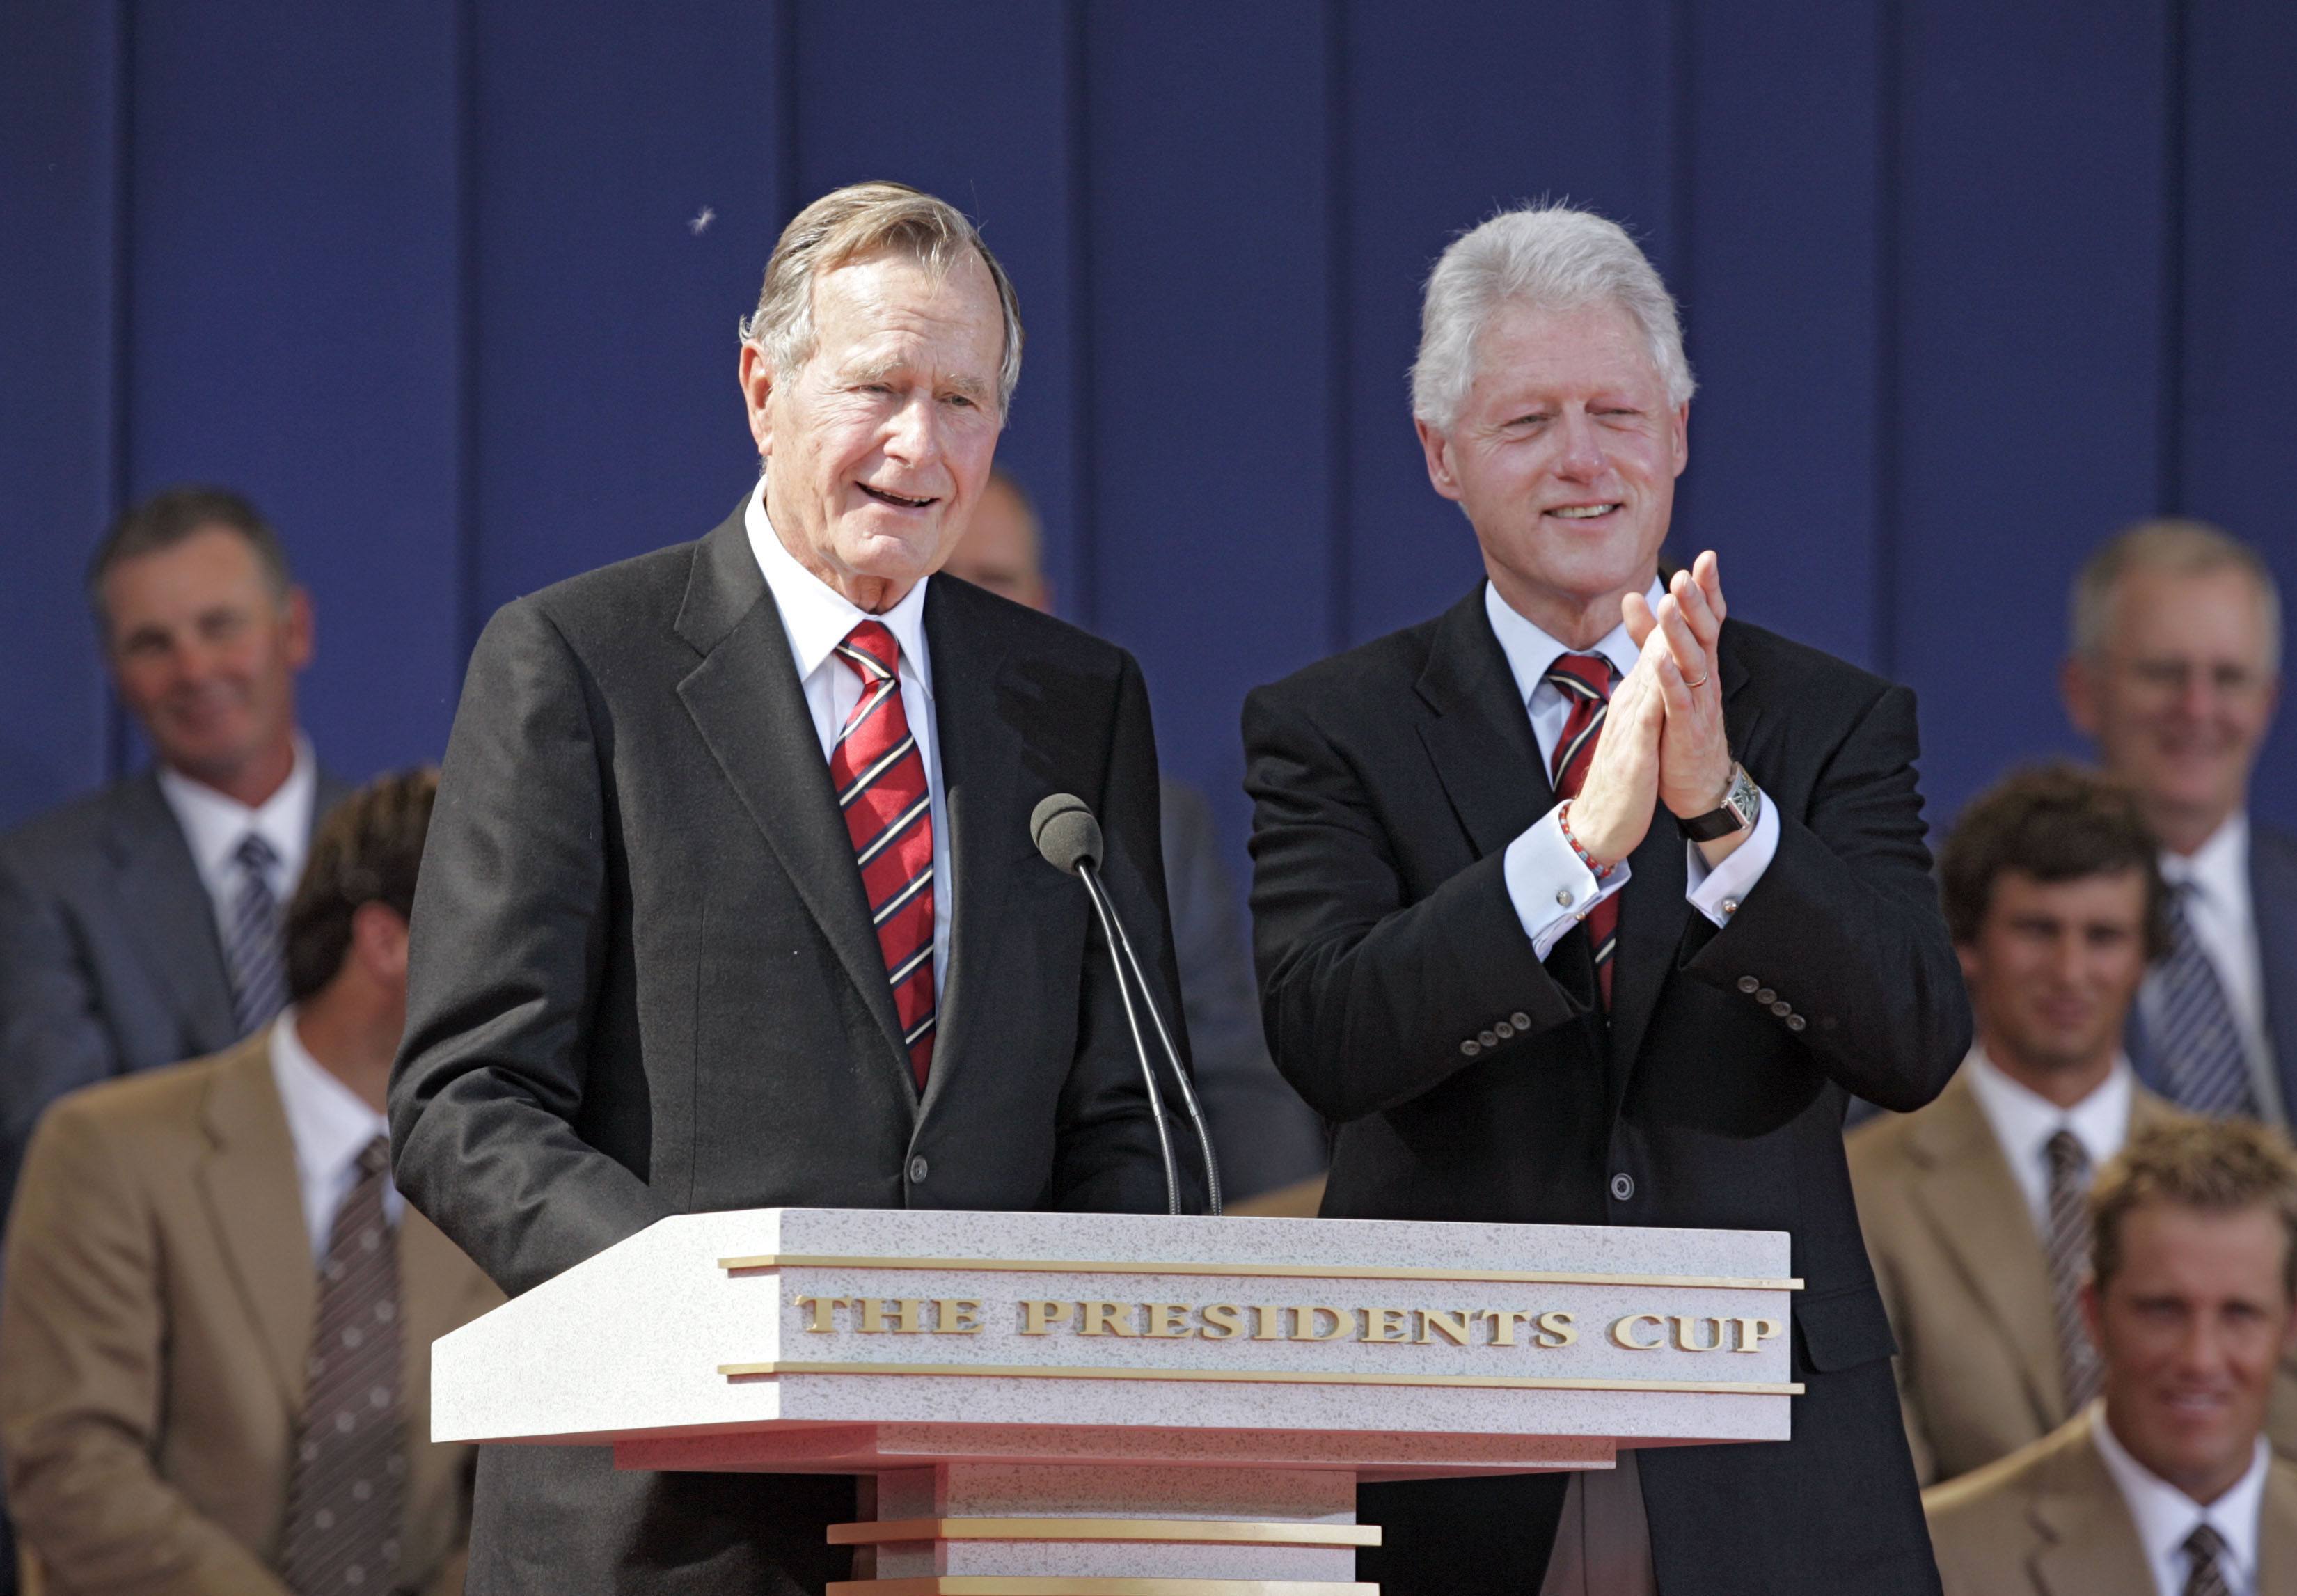 Former United States Presidents George H.W. Bush and Bill Clinton during the opening ceremony of The Presidents Cup at Robert Trent Jones Golf Club in Prince William County, Virginia on September 22, 2005.